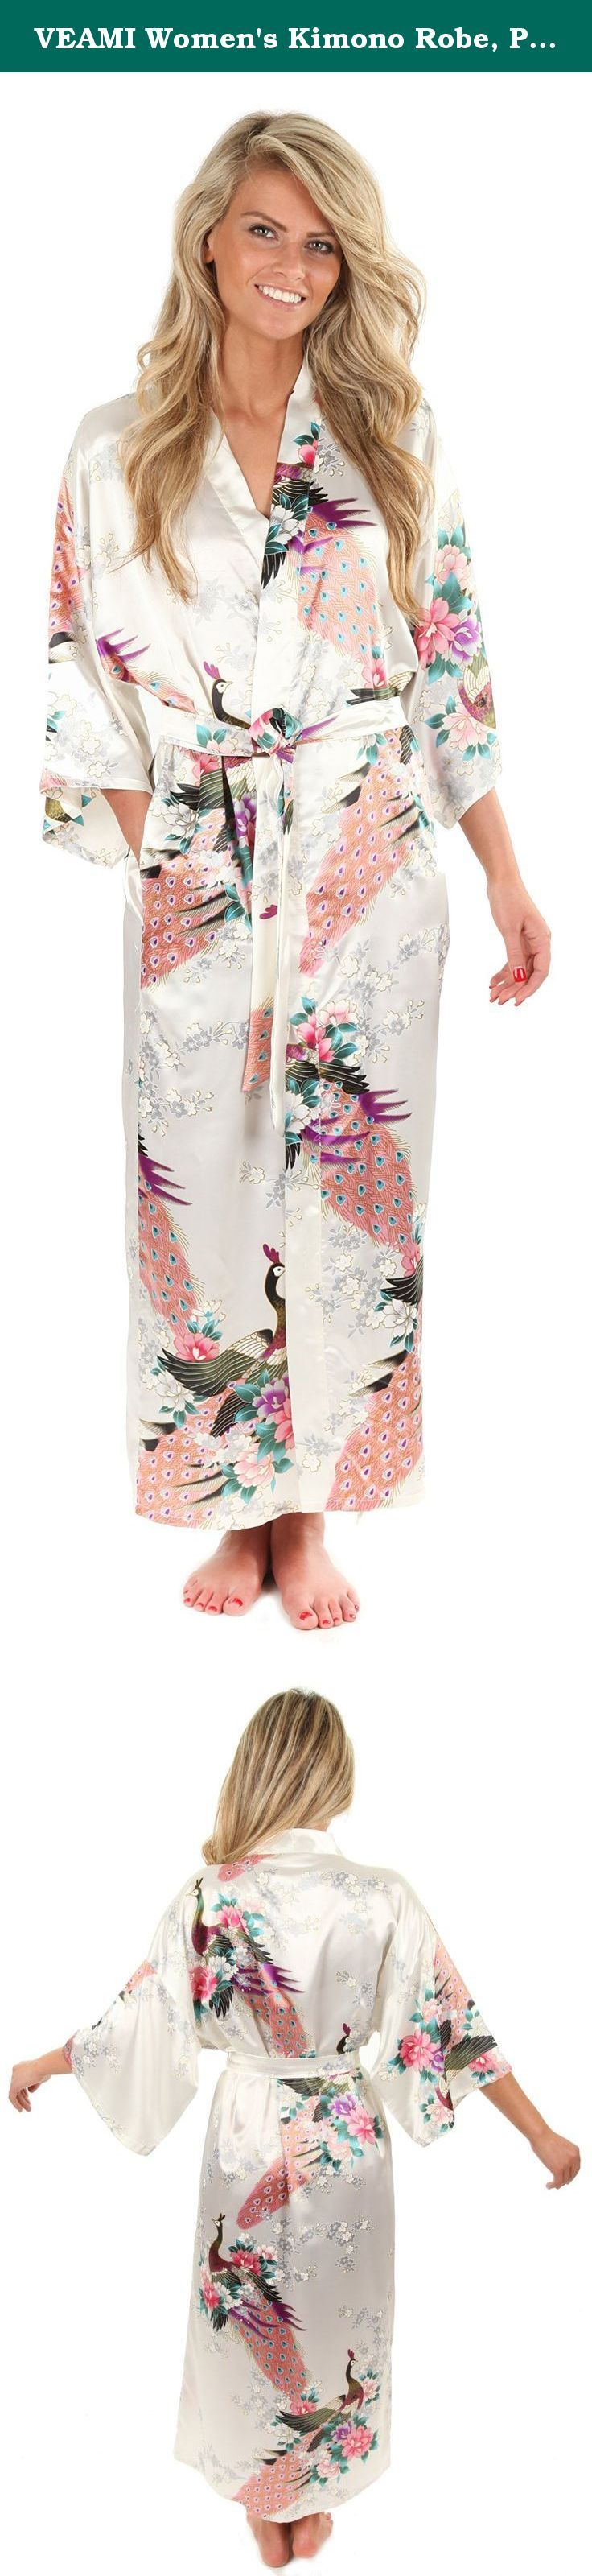 VEAMI Women's Kimono Robe, Peacock Design-White Seagull-X-Small, Long. This elegant kimono robe, available in multiple colors, can be described as a perfect combination of magnificence and classiness. Silky feel and look of Polyester fabric make the robe look rich, smooth and lustrous.